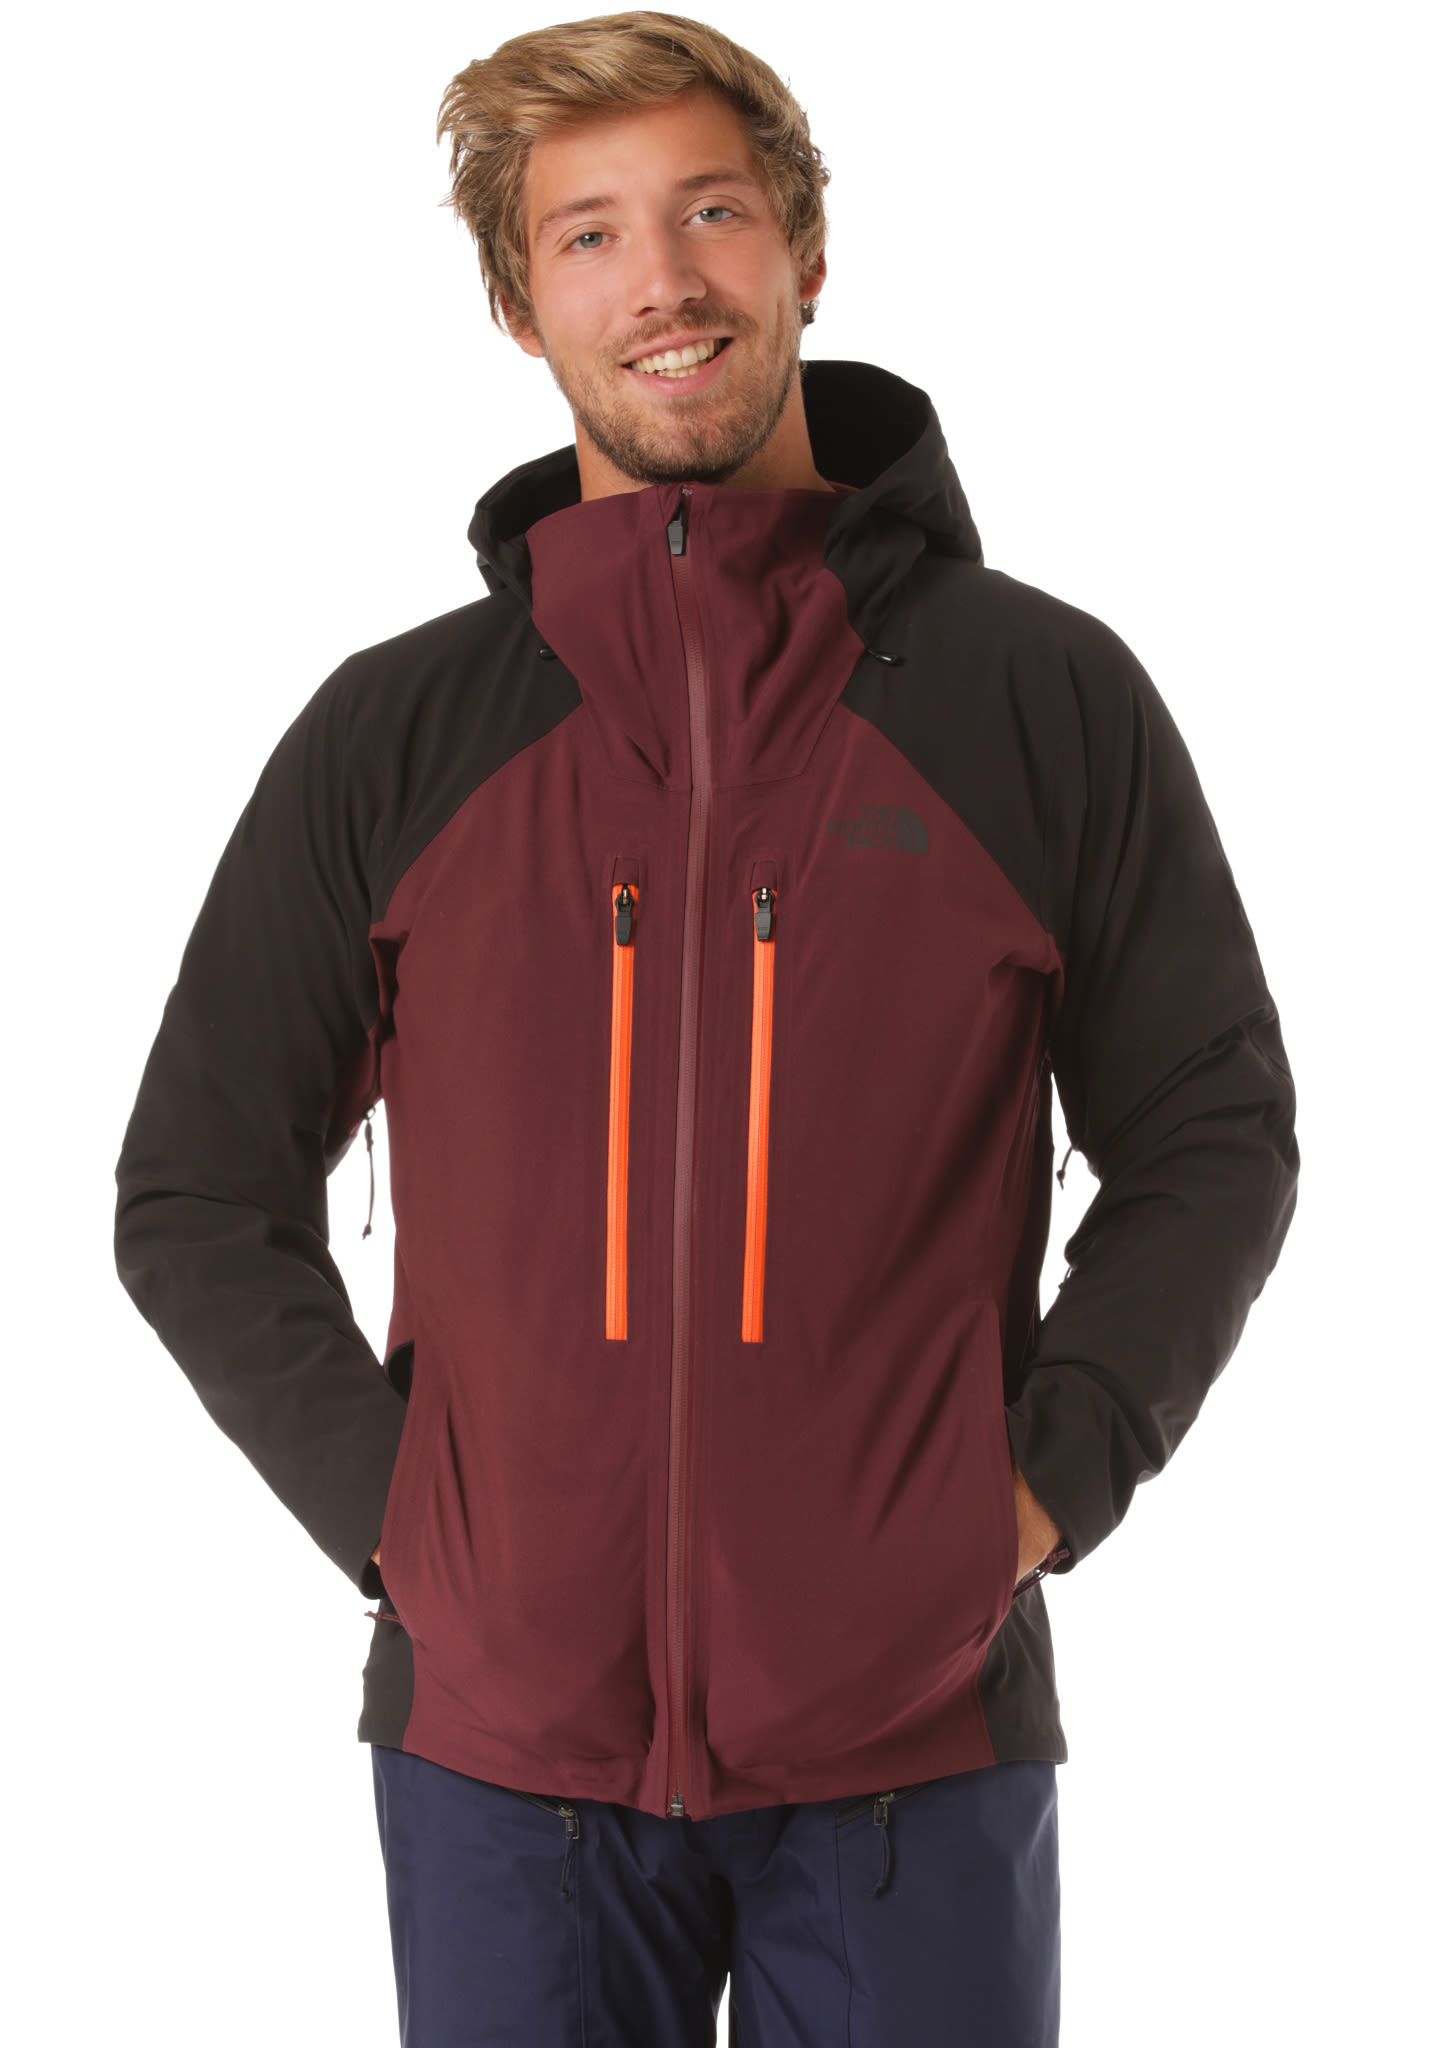 Chollazo Chaqueta impermeable The North Face M Solaris